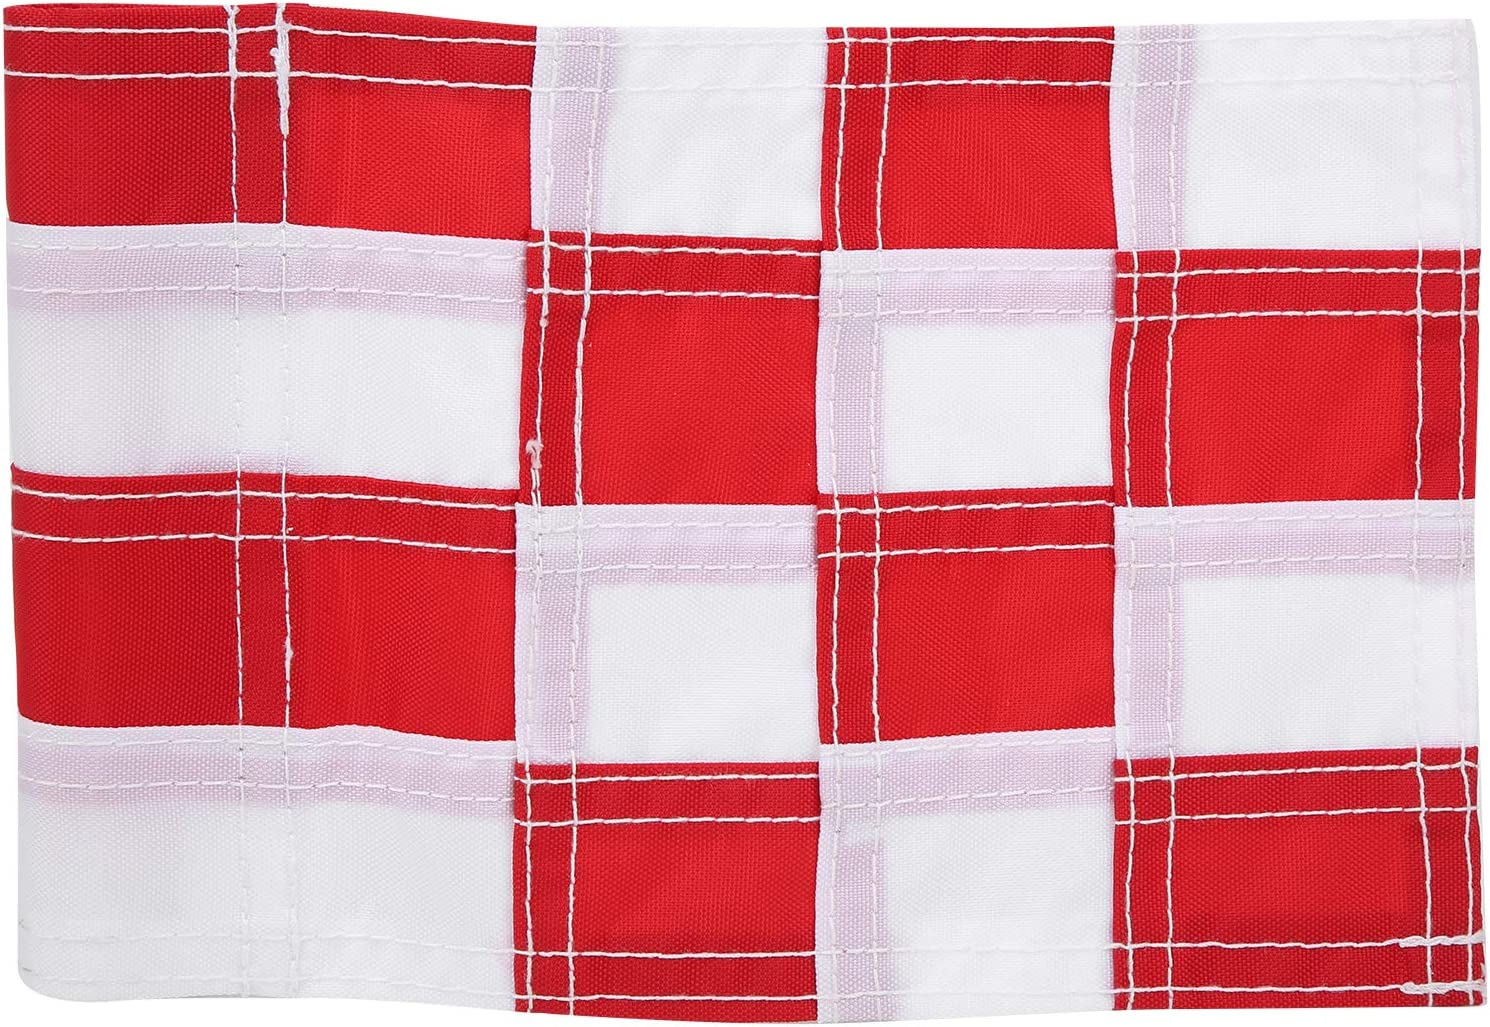 LeXiangLANGood Standard Flag Nashville-Davidson Mall Double- pin Sided Adjustable sold out